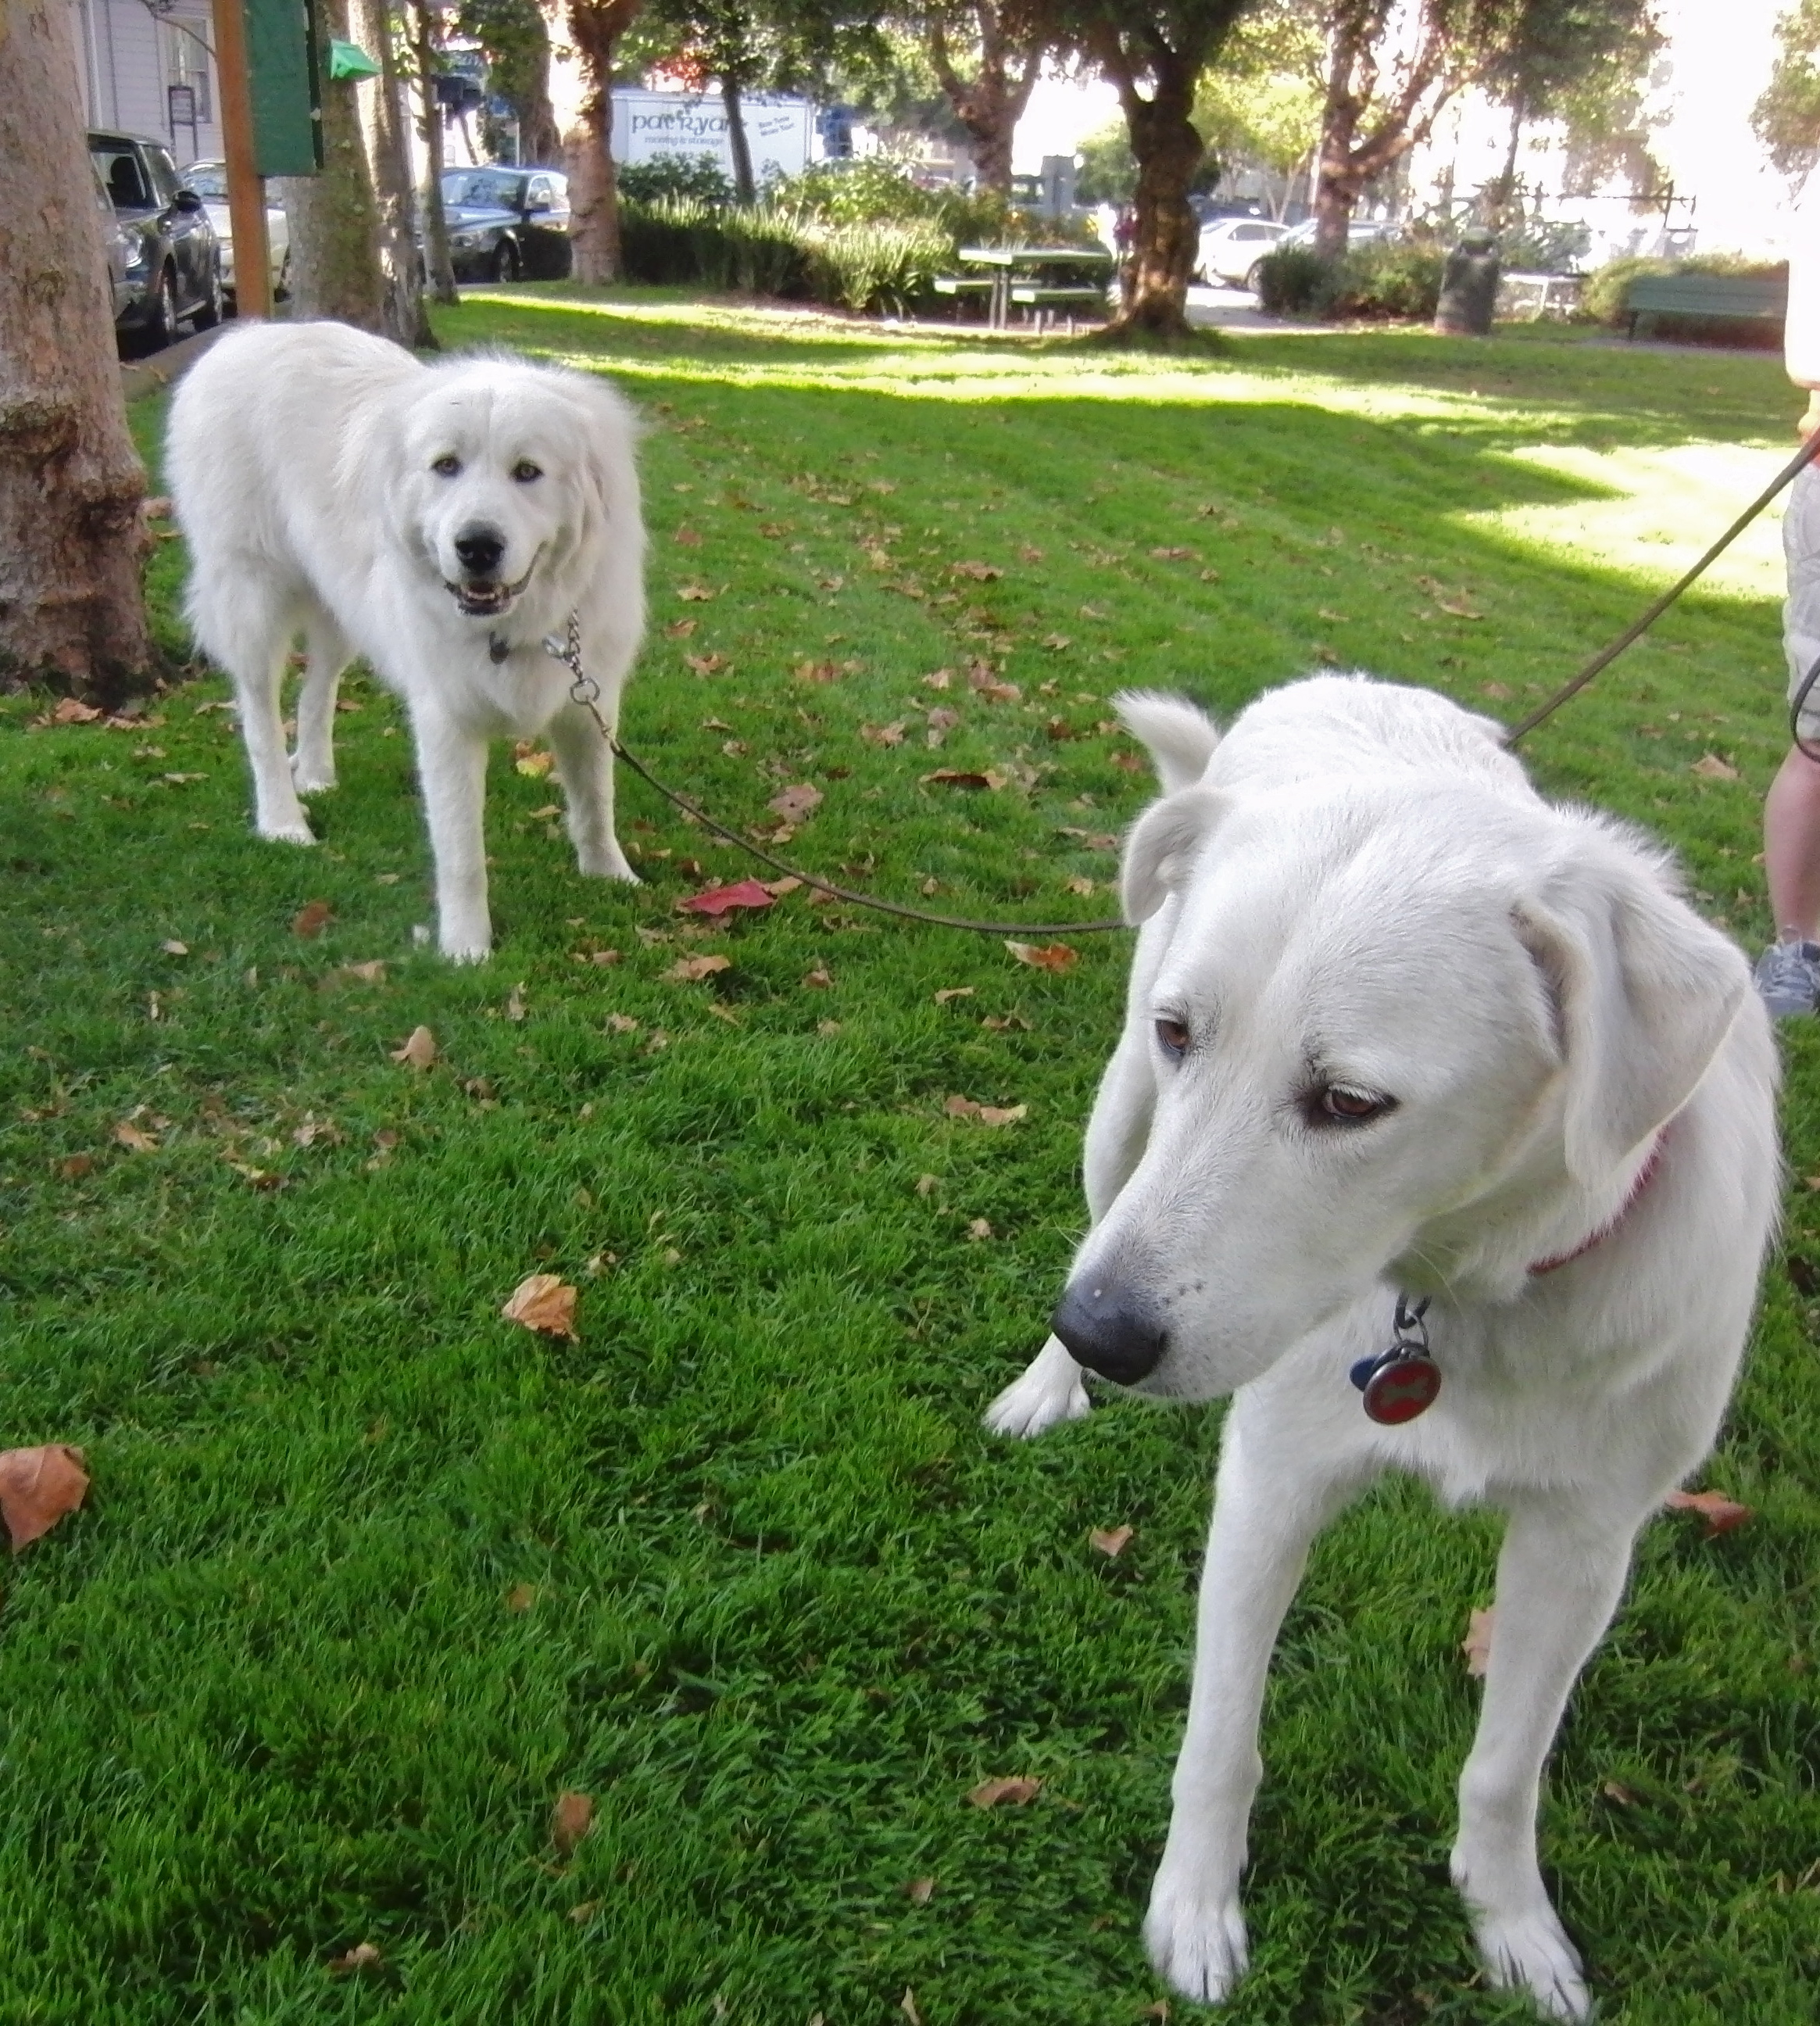 Akbash Dog and Great Pyrenees Dog